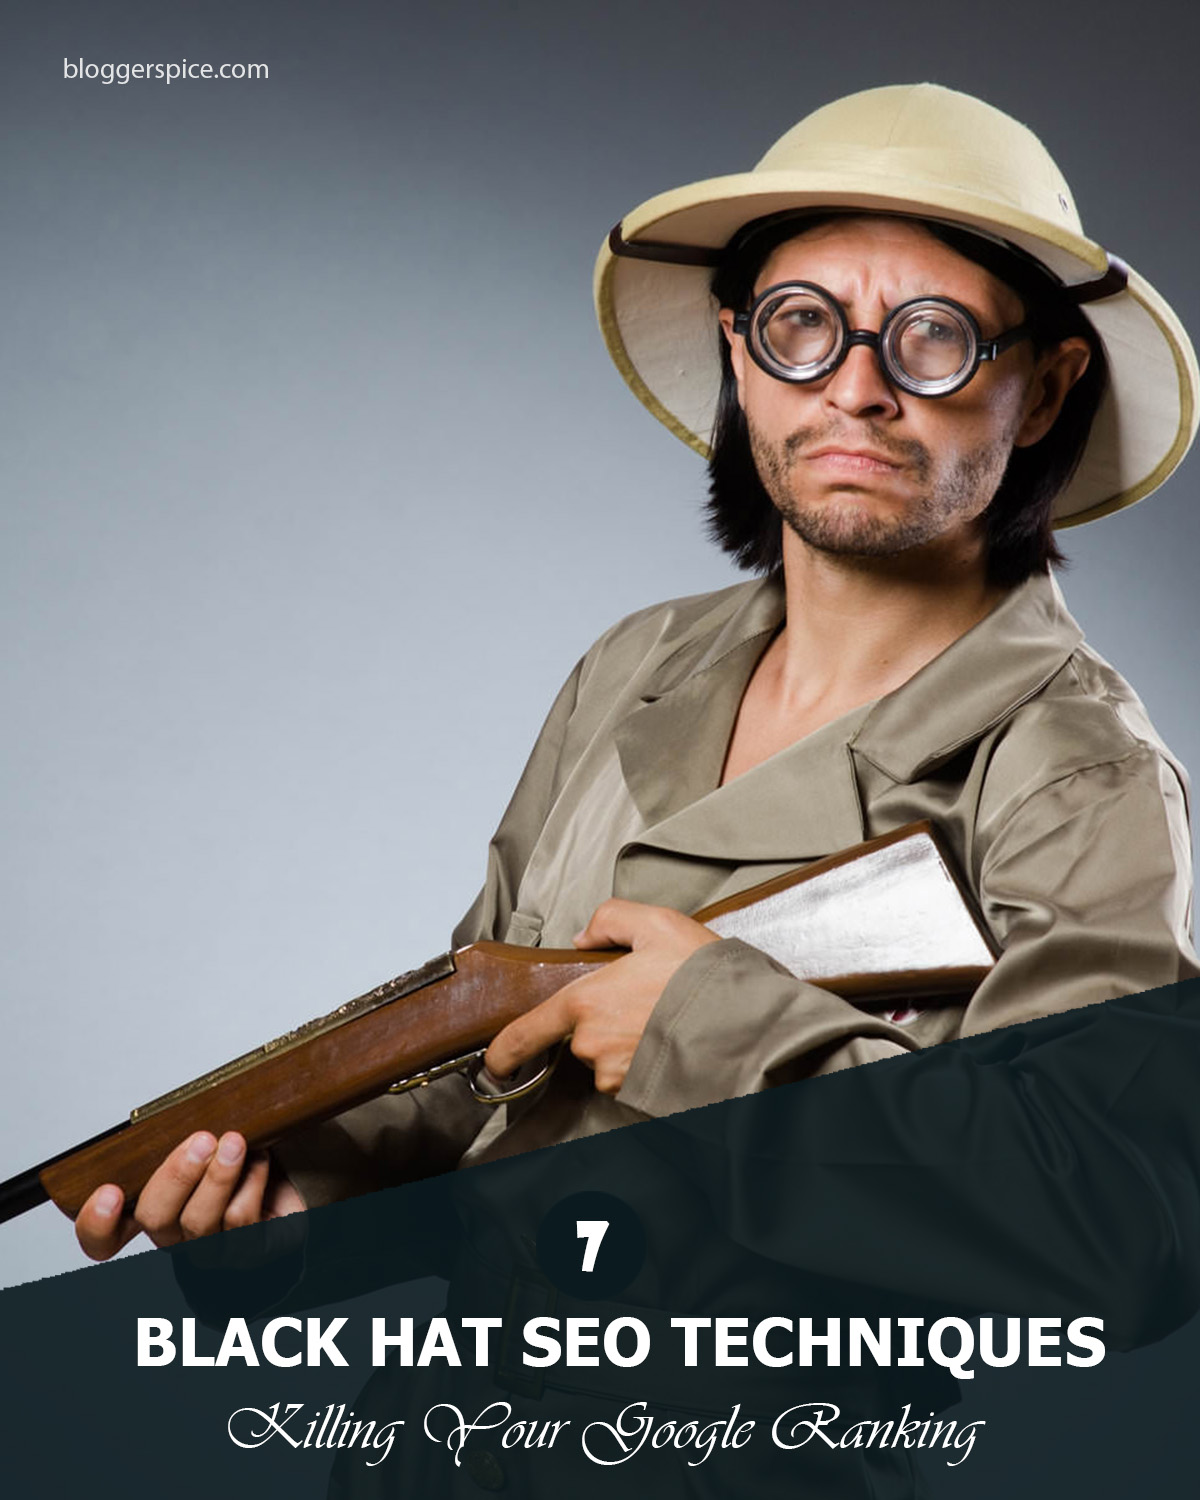 8 Crippling Black Hat SEO Techniques to Avoid Like the Plague in 2018